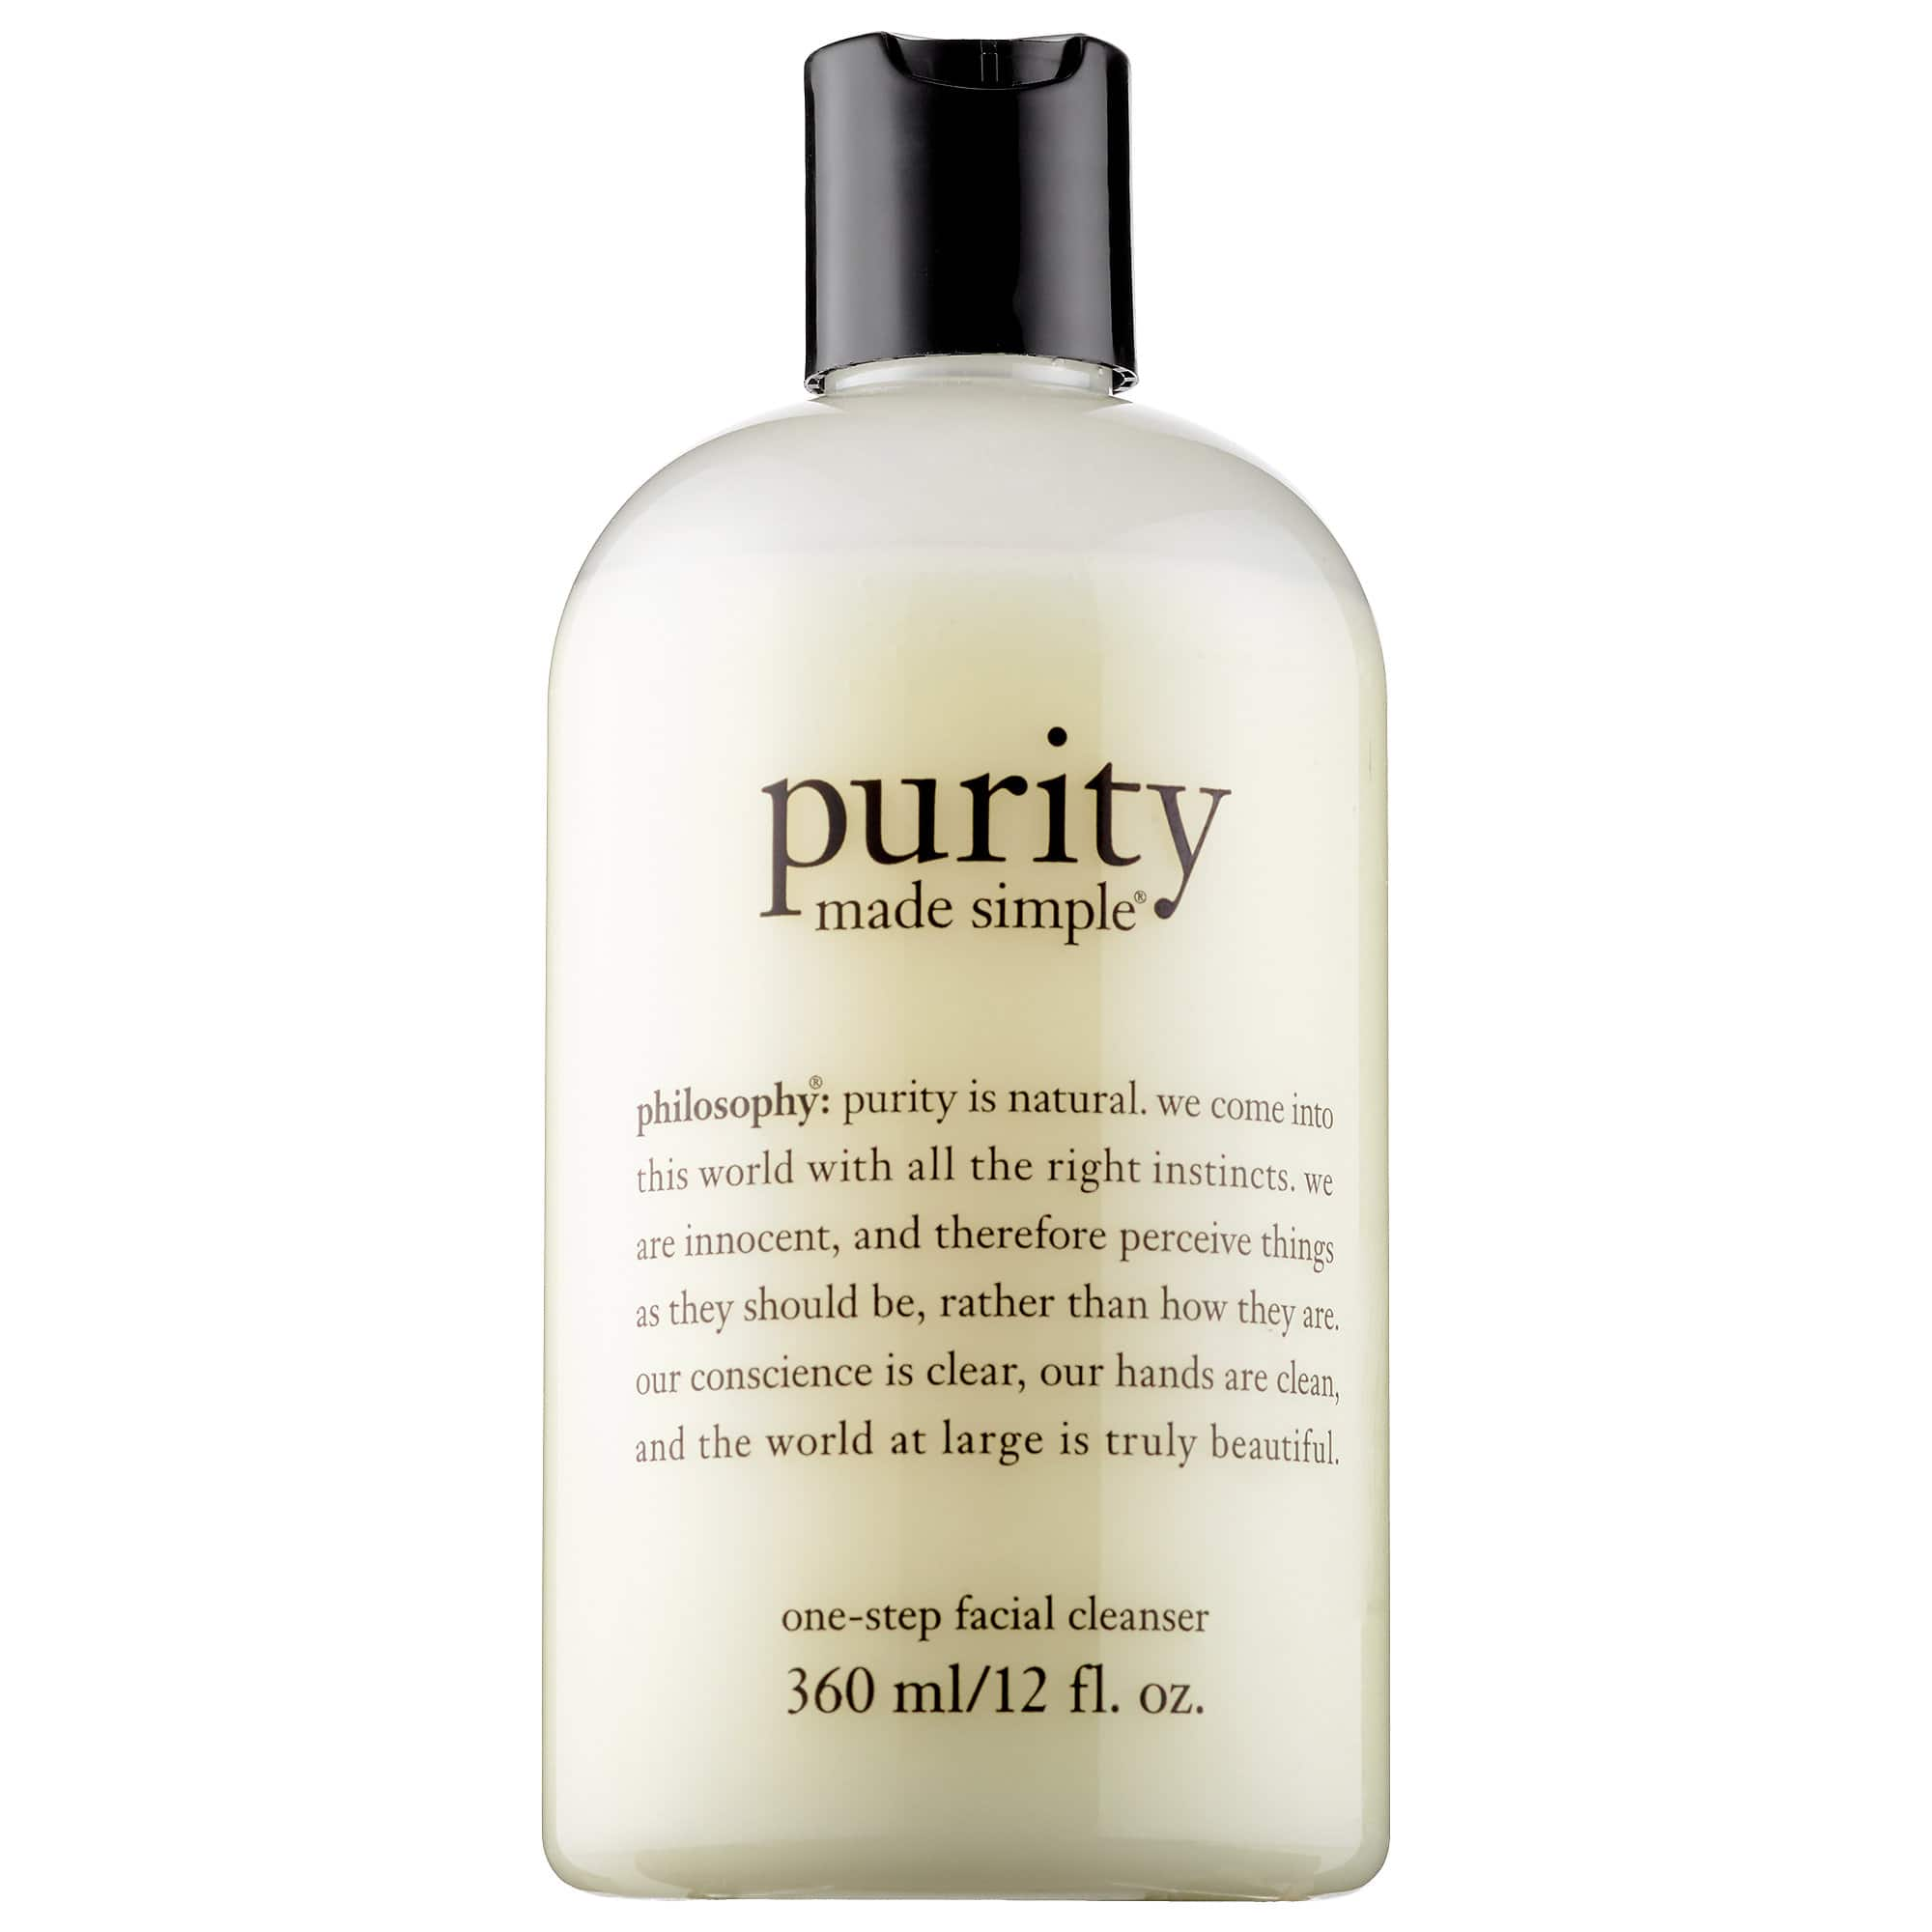 Sephora: PHILOSOPHY Purity Made Simple One-Step Facial Cleanser (12 Oz) $15